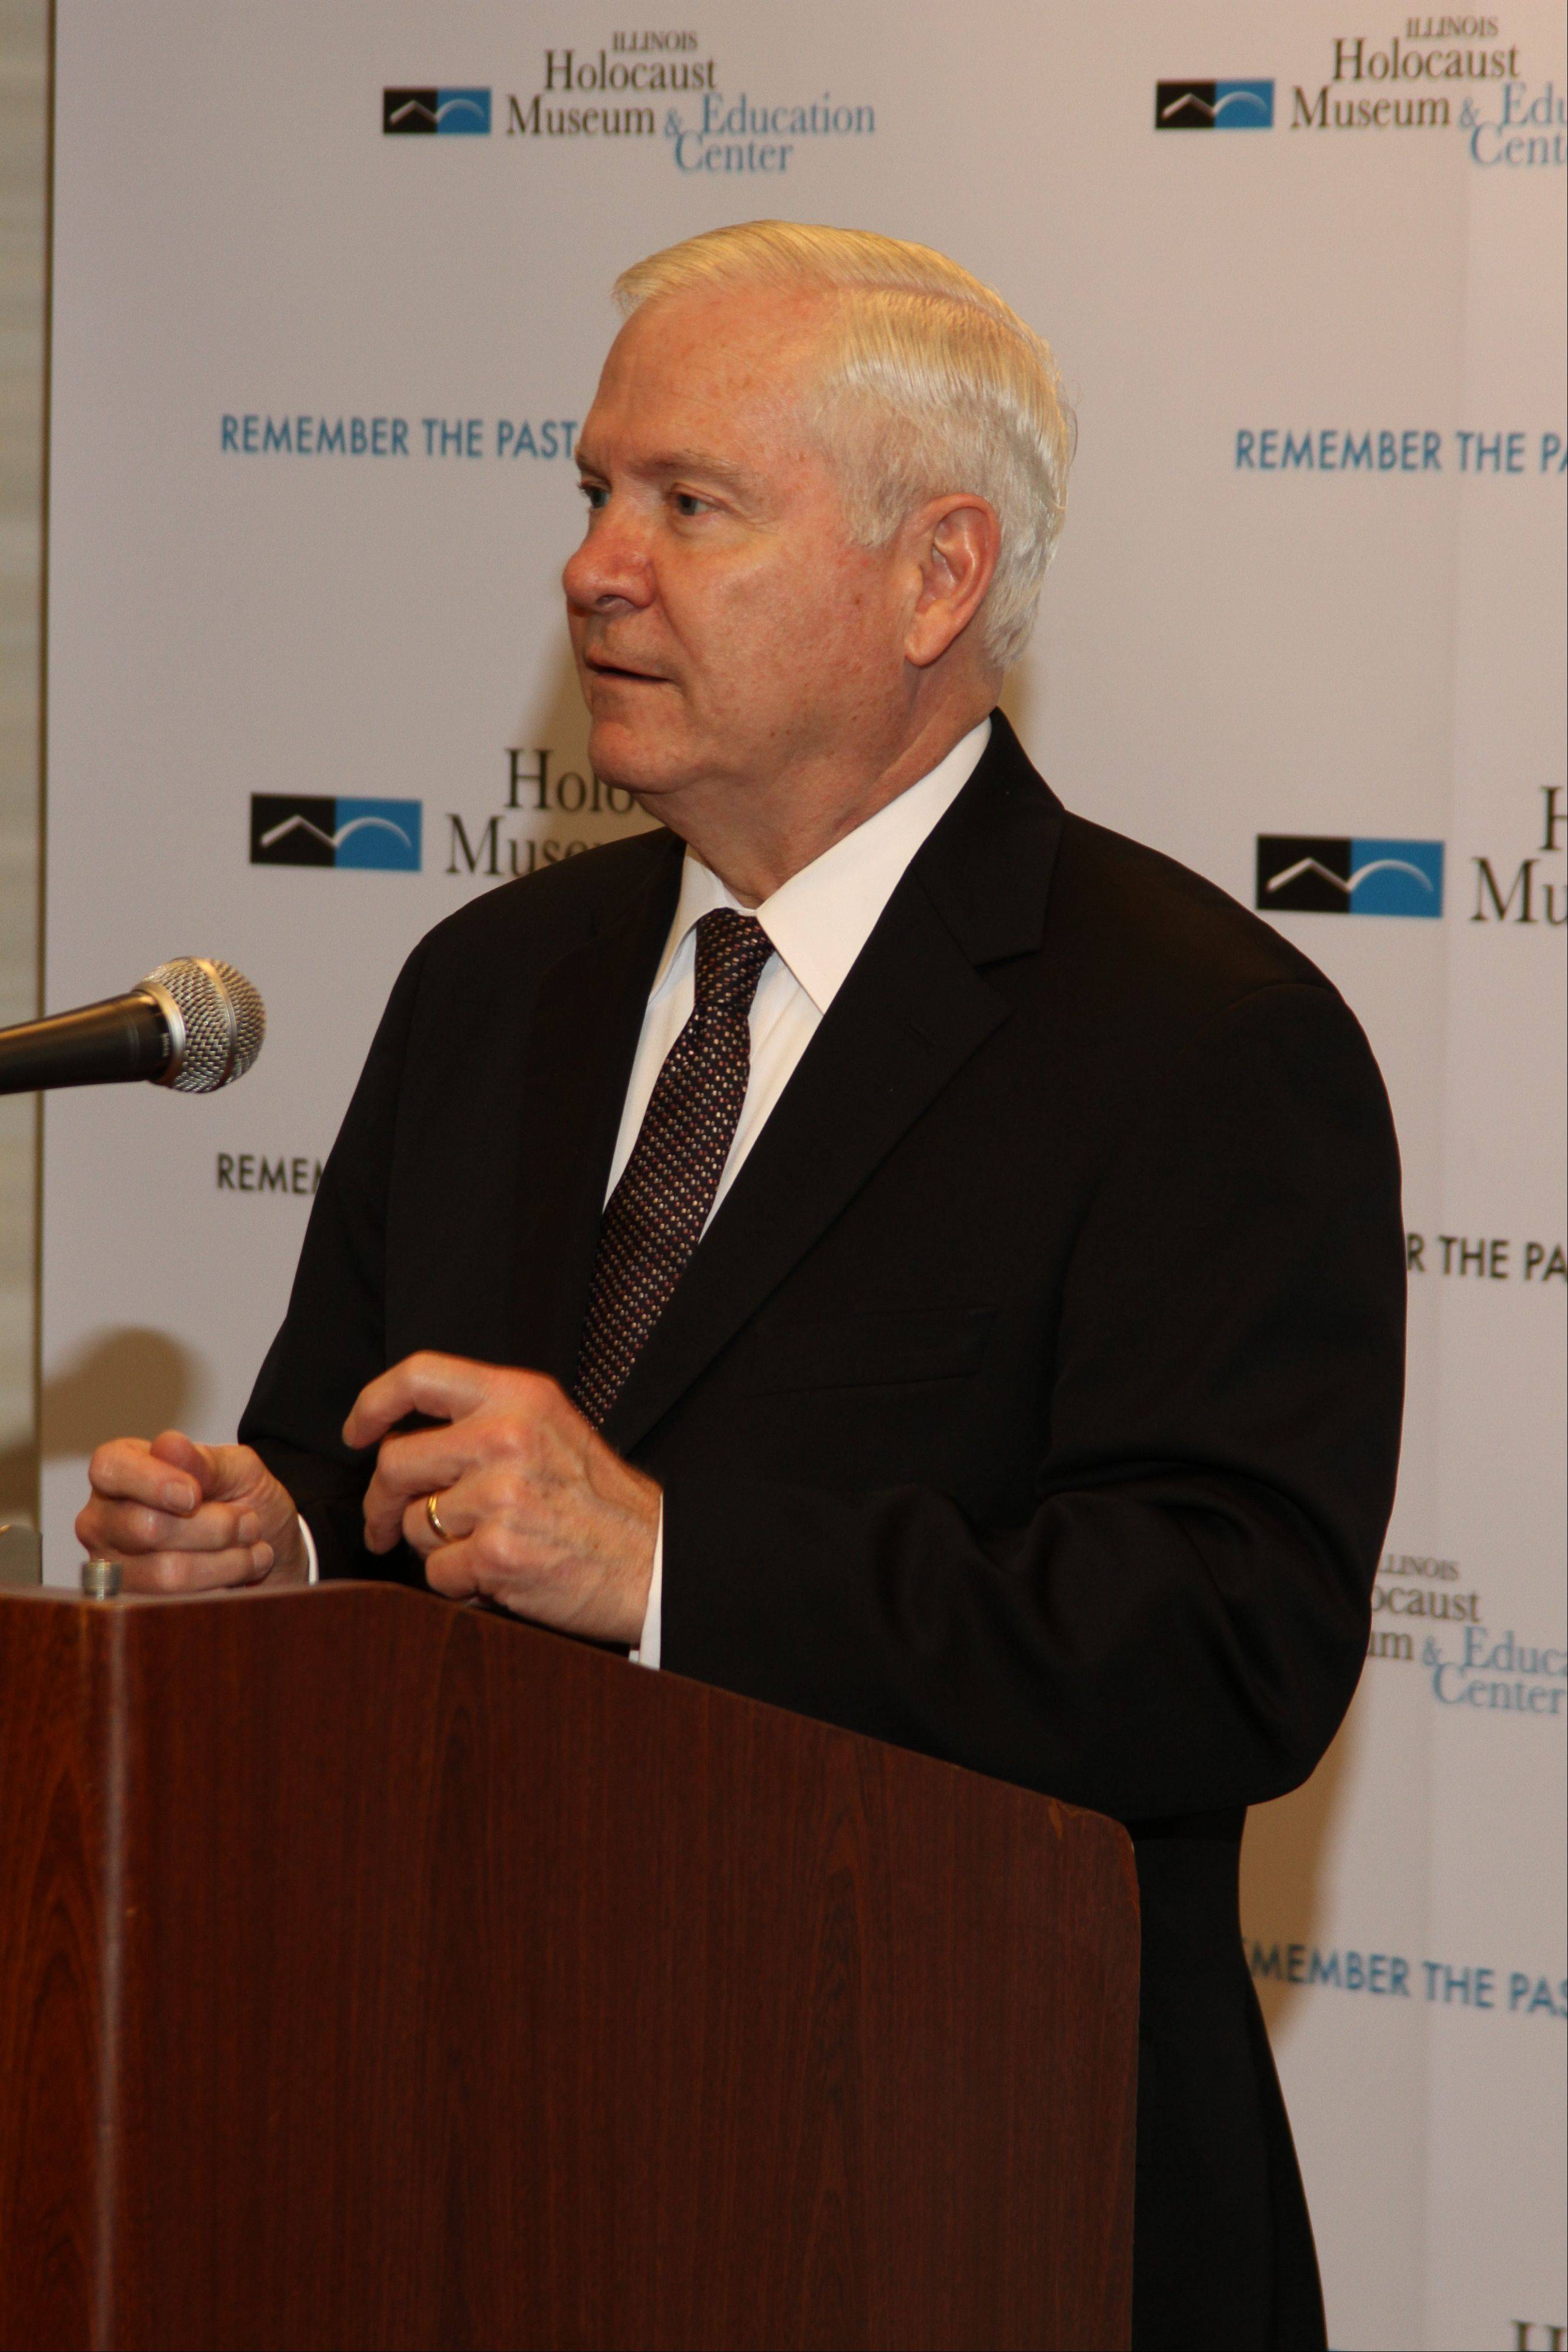 U.S. Secretary of Defense (2006-2011) Robert Gates speaks to the media prior to the Illinois Holocaust Museum & Education Center's Humanitarian Awards Dinner March 6 at the Hyatt Regency Chicago.